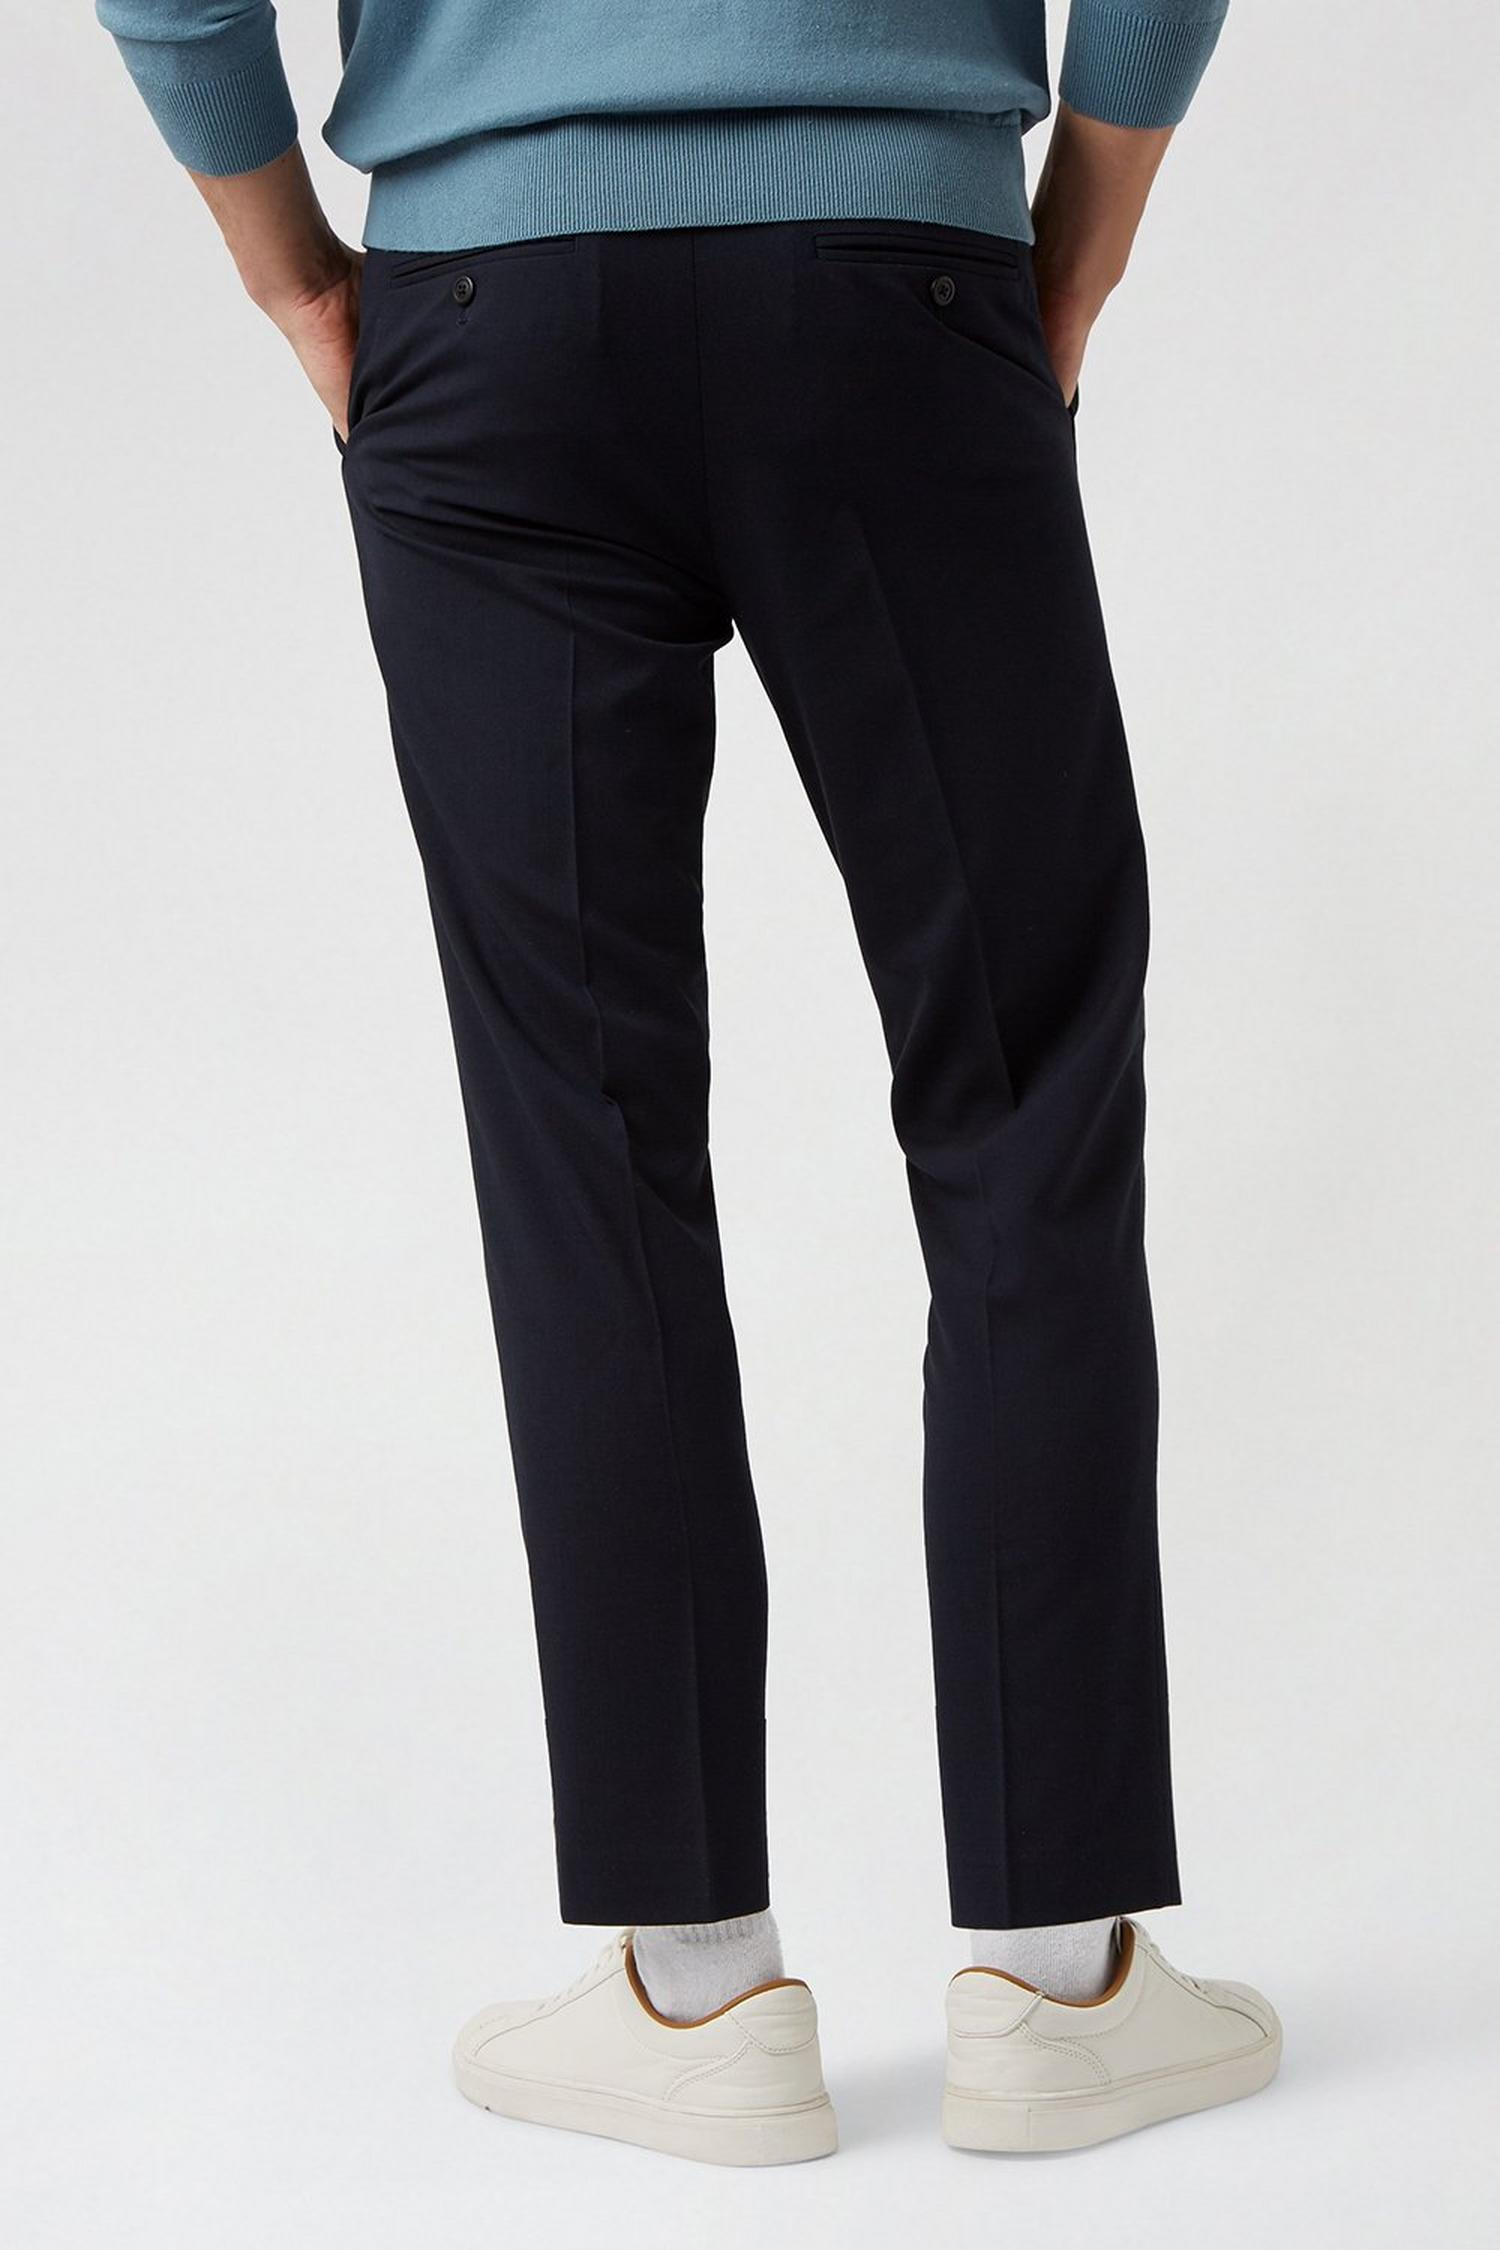 148 Navy Essential Skinny Fit Suit Trousers image number 3